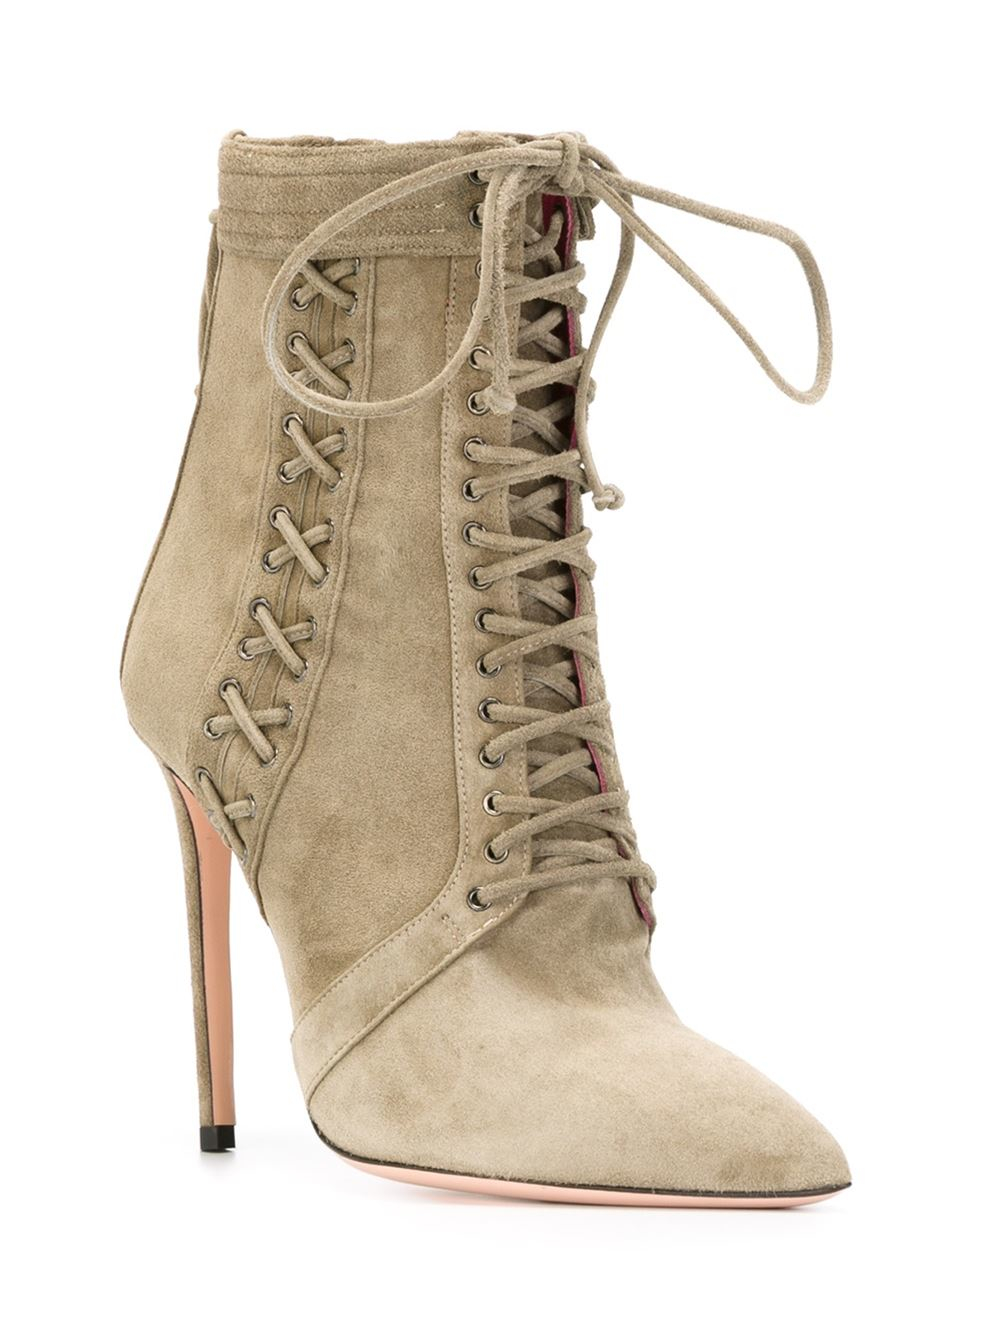 Cost Cheap Price Pick A Best Sale Online Pre-owned - Leather lace up boots Oscar Tiye Countdown Package Cheap Online Supply Online I2QMX3Bp